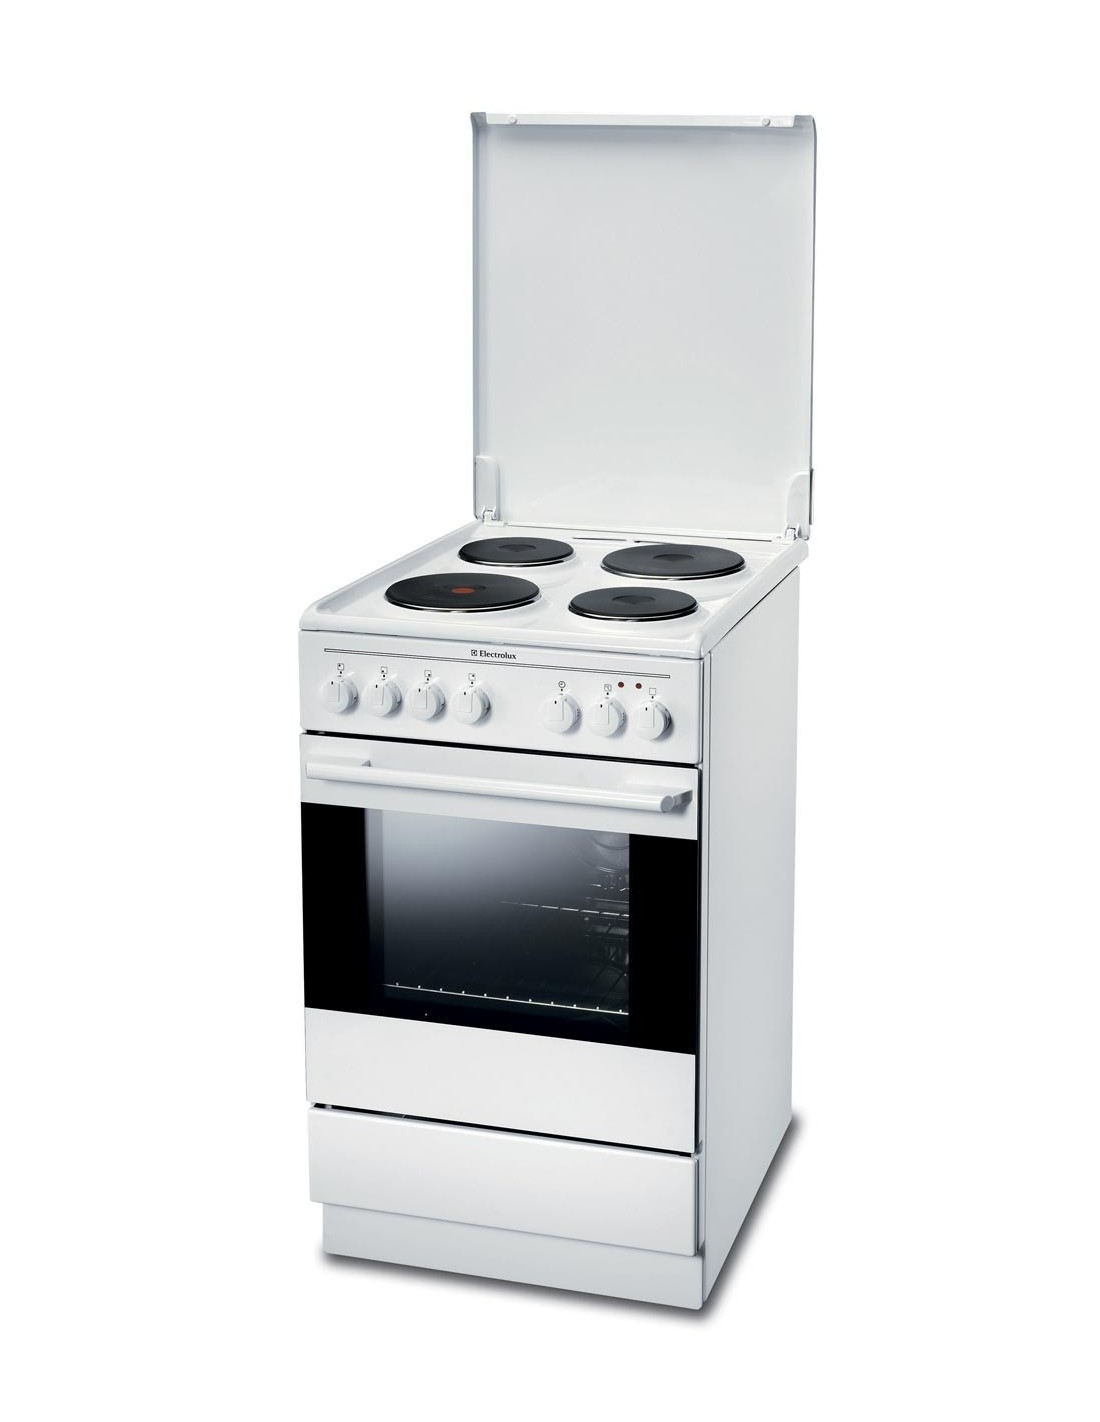 Cuisiniere a plaques electrolux feh 50 p2 for Freistehender herd